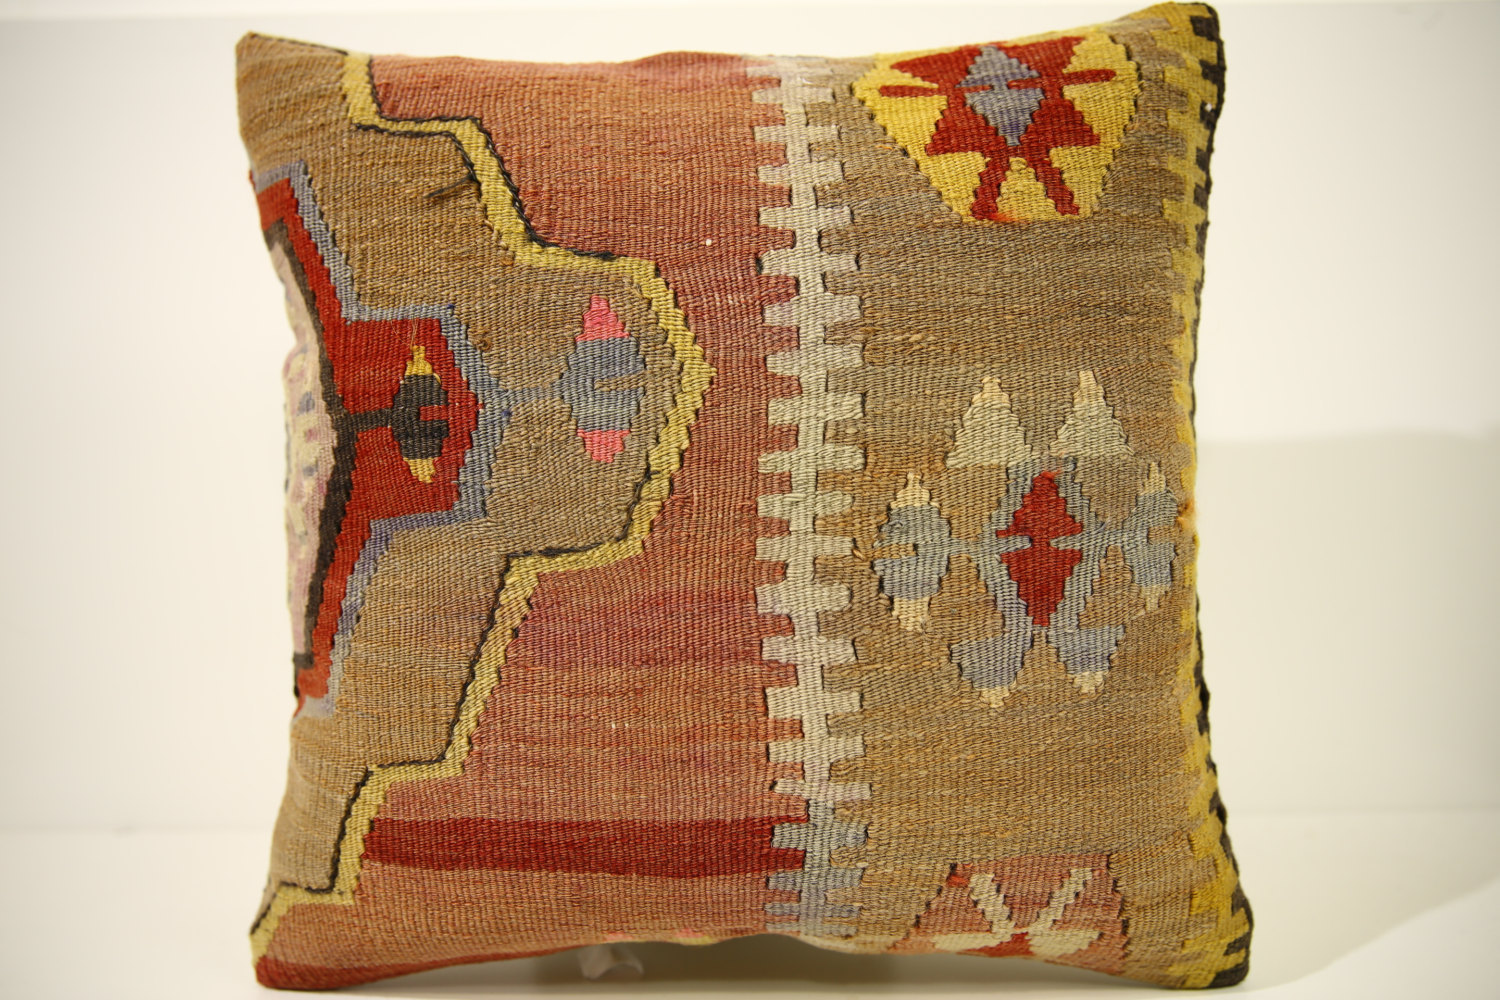 Kilim Pillows | 16x16 | Turkish pillows | 1514 | Accent Pillow,Decorative Pillow